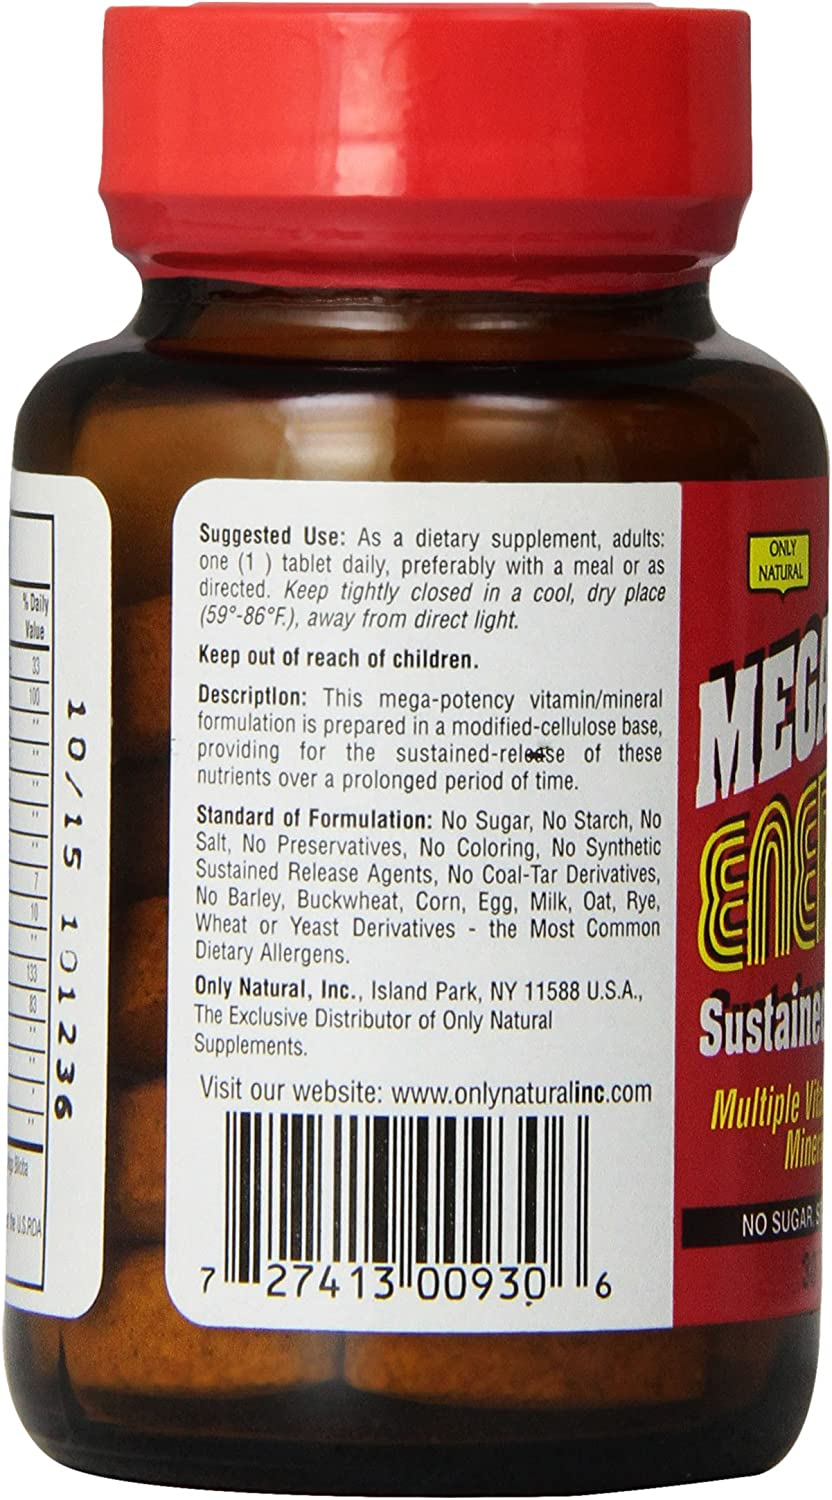 Only Natural Mega Multi Energizers, 30-Count